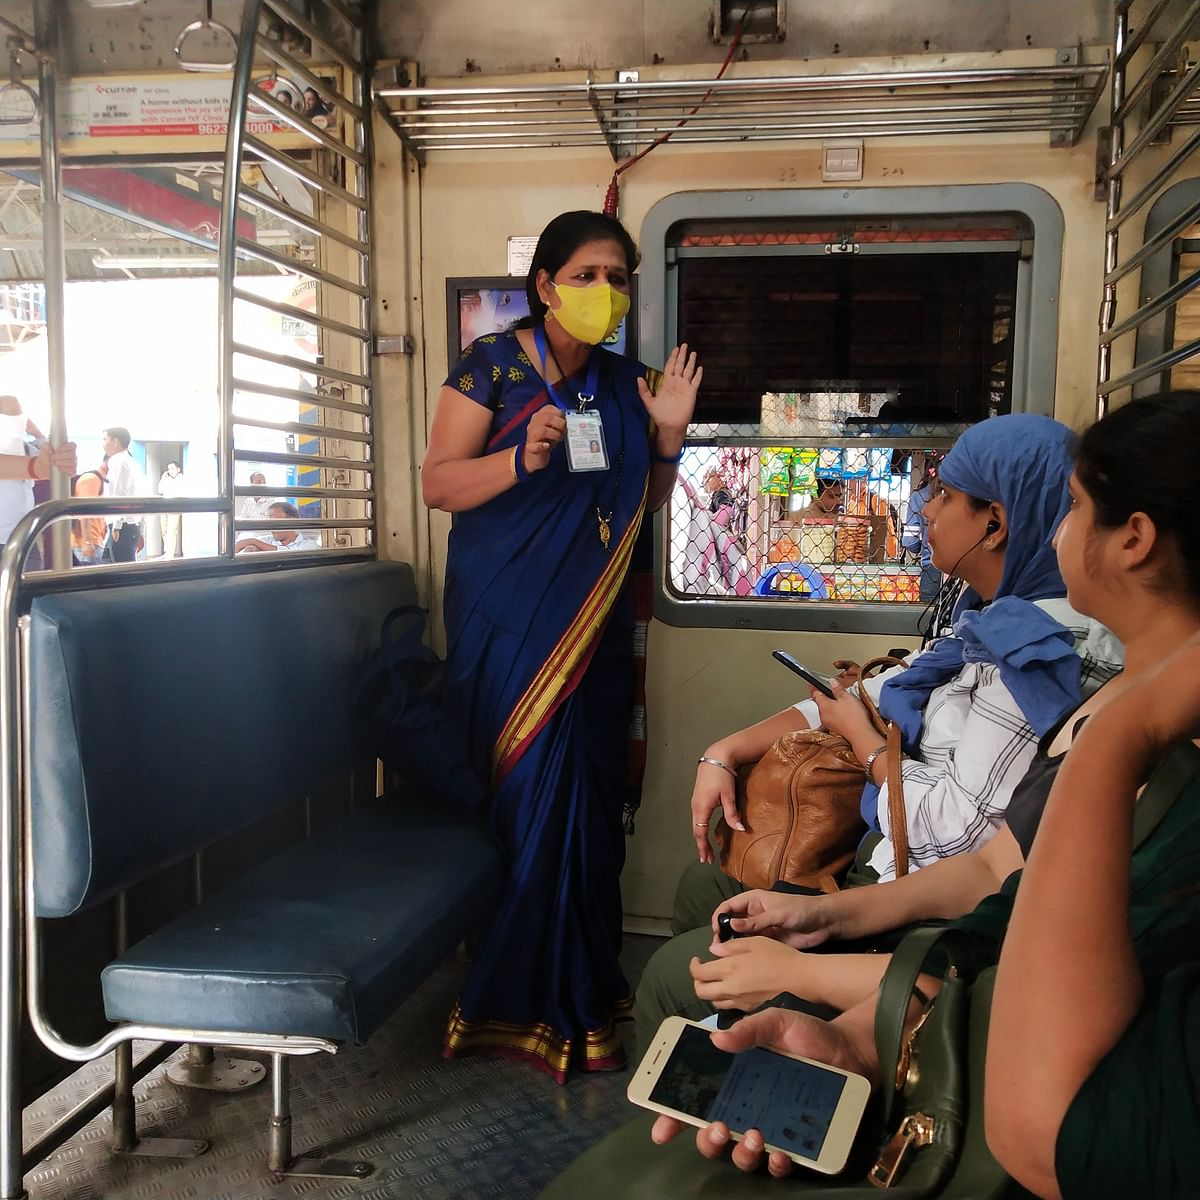 Central Railway staffer instructing passengers to  to use the mask